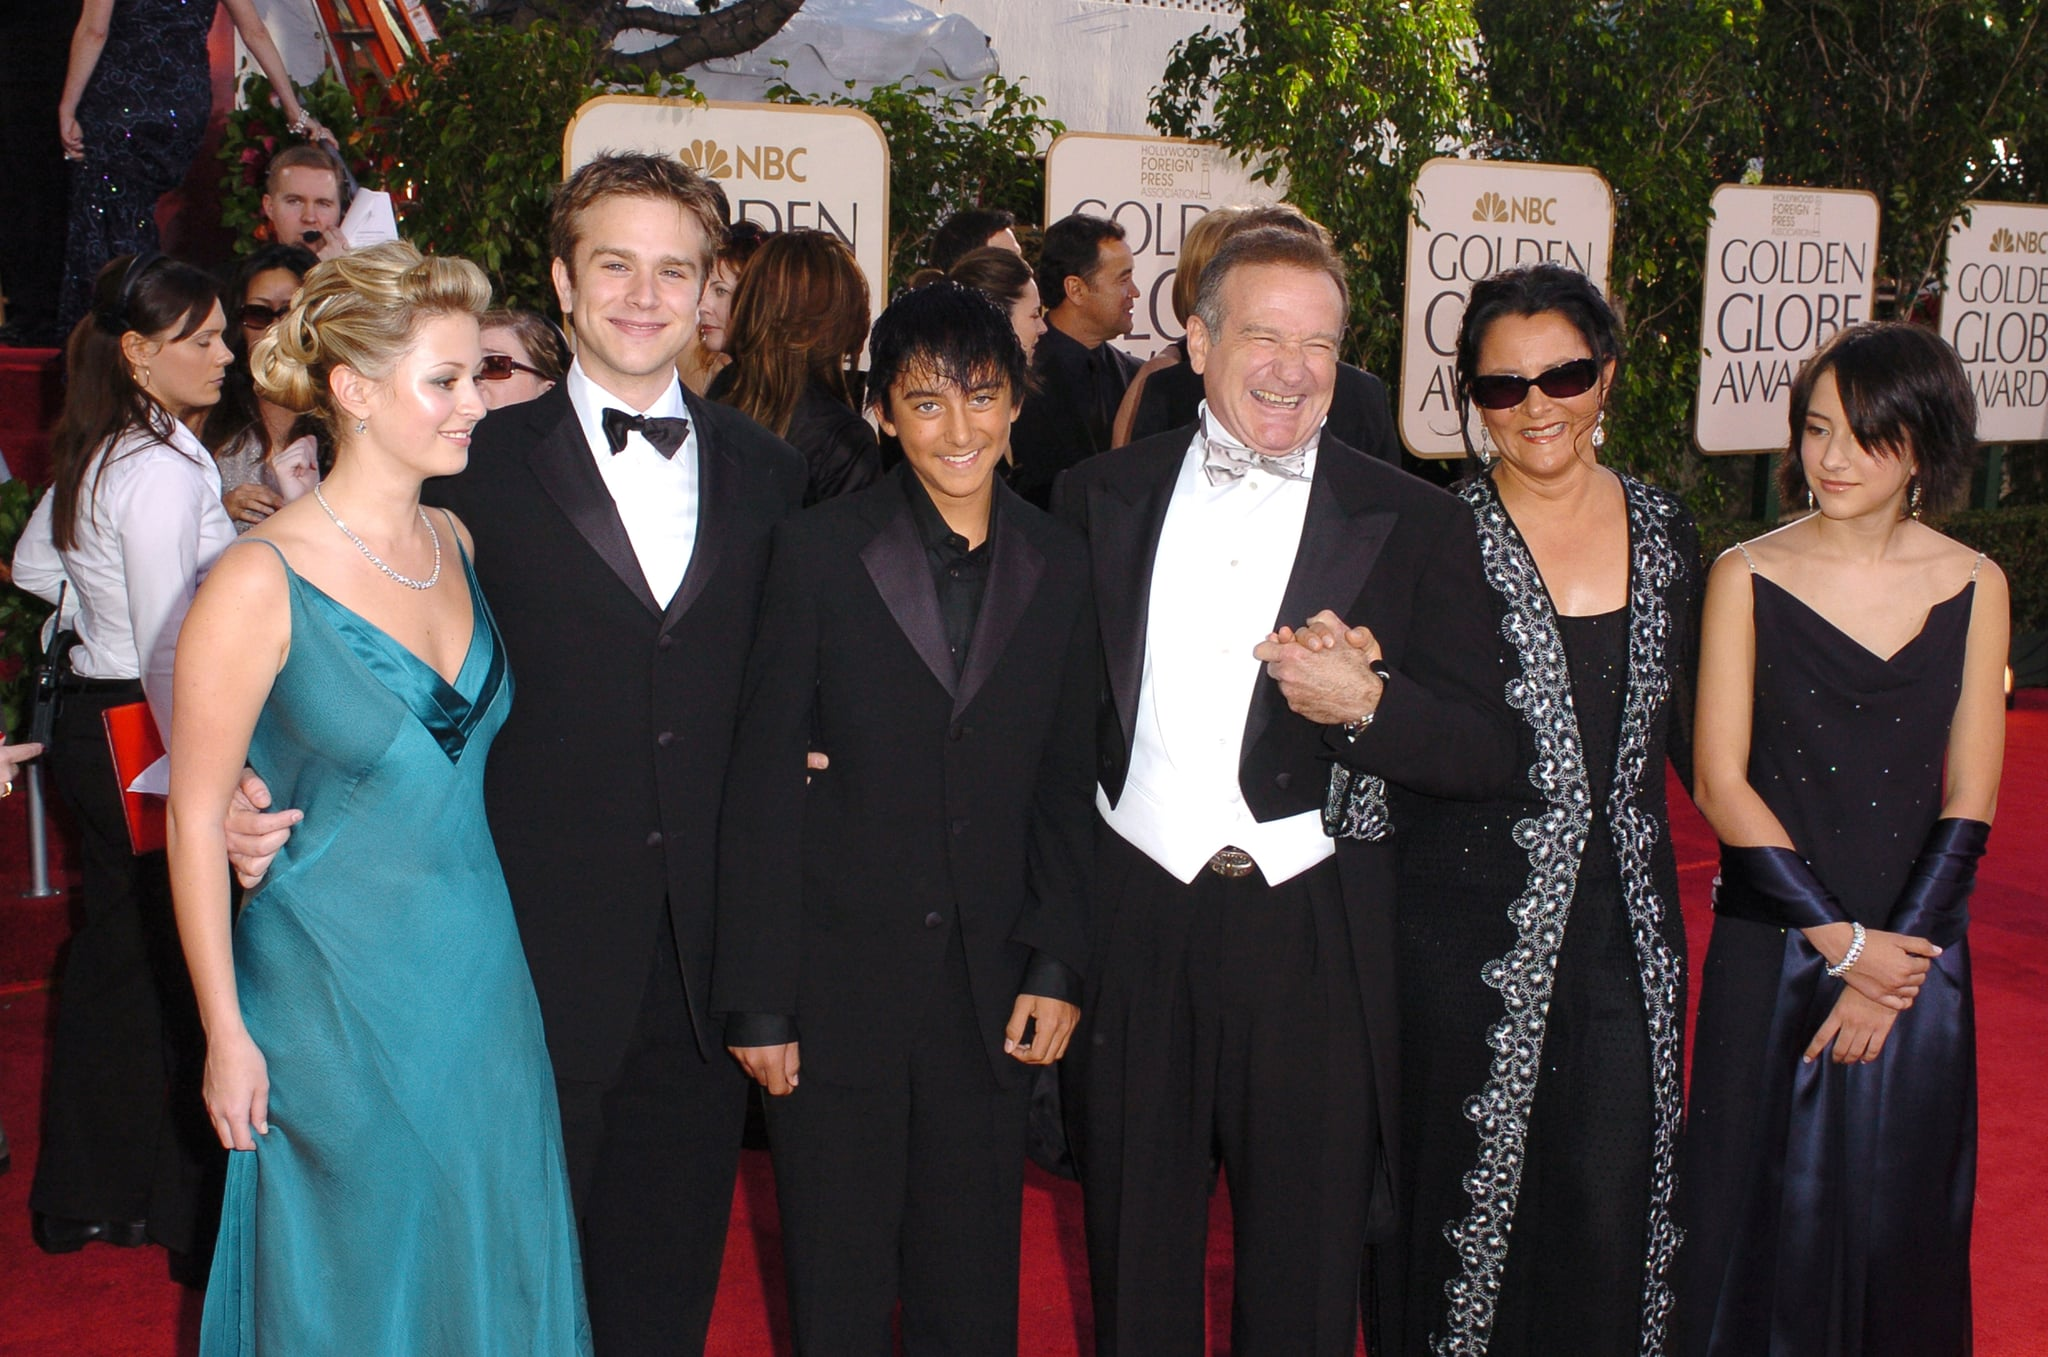 Robin Williams and family during The 62nd Annual Golden Globe Awards - Arrivals at Beverly Hilton Hotel in Los Angeles, California, United States. (Photo by SGranitz/WireImage)